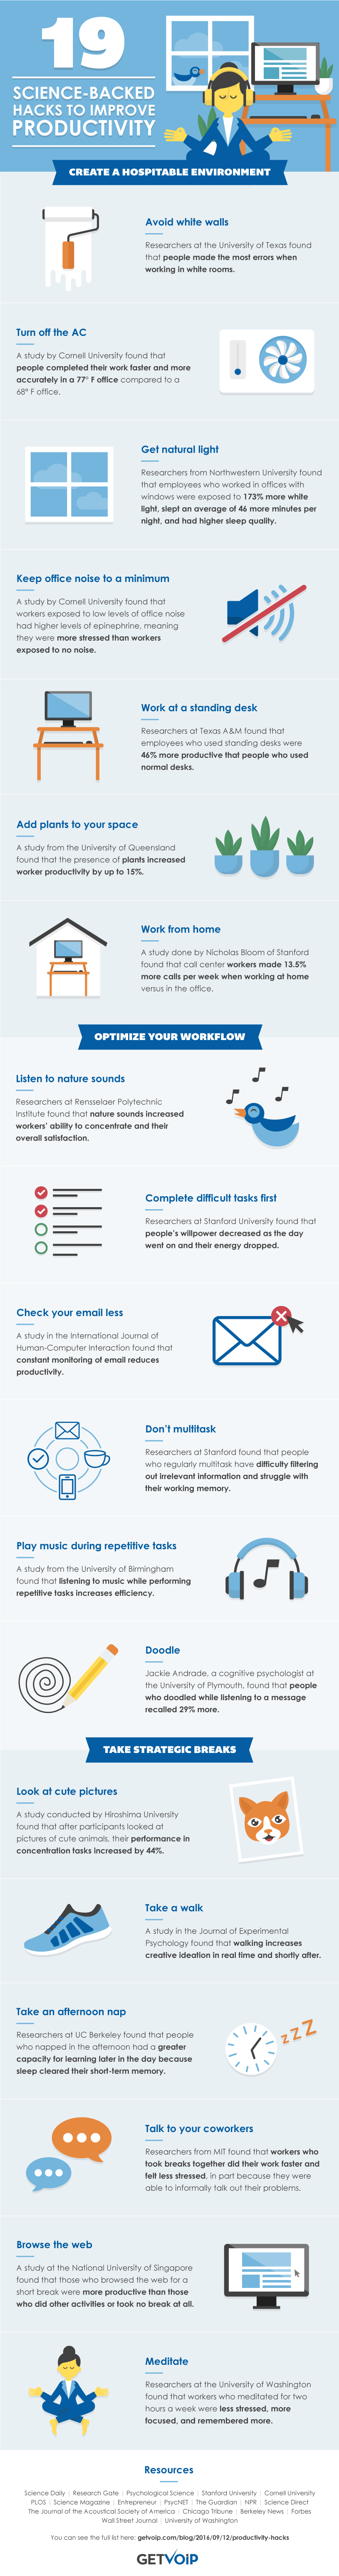 19 Simple Tips to Increase Productivity at the Office #Infographic